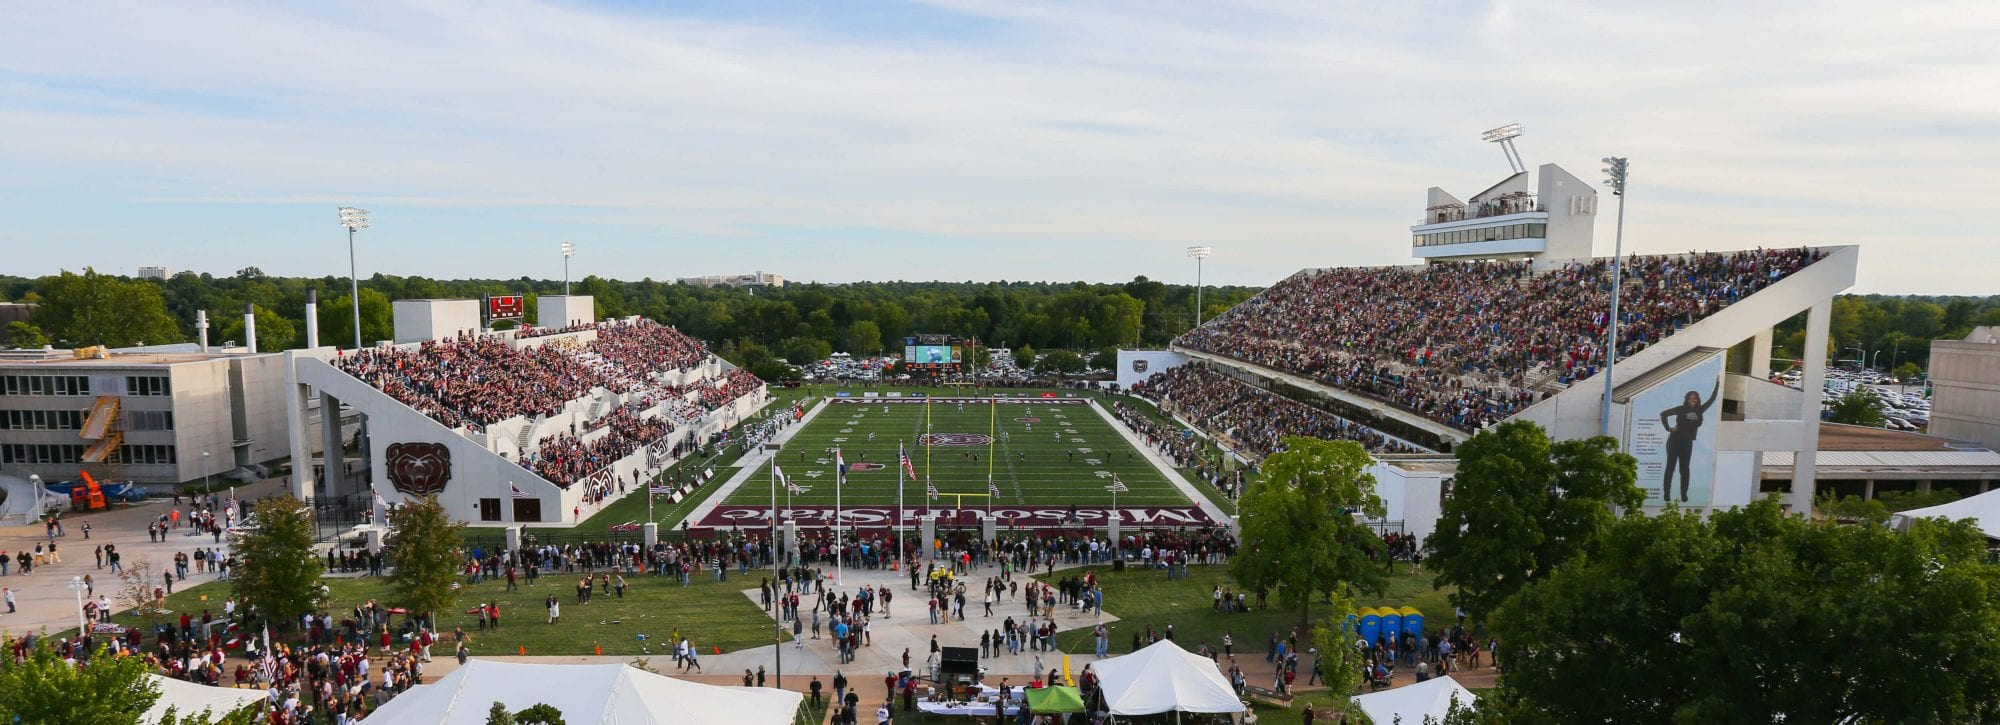 Missouri-State-University-Plaster-Stadium